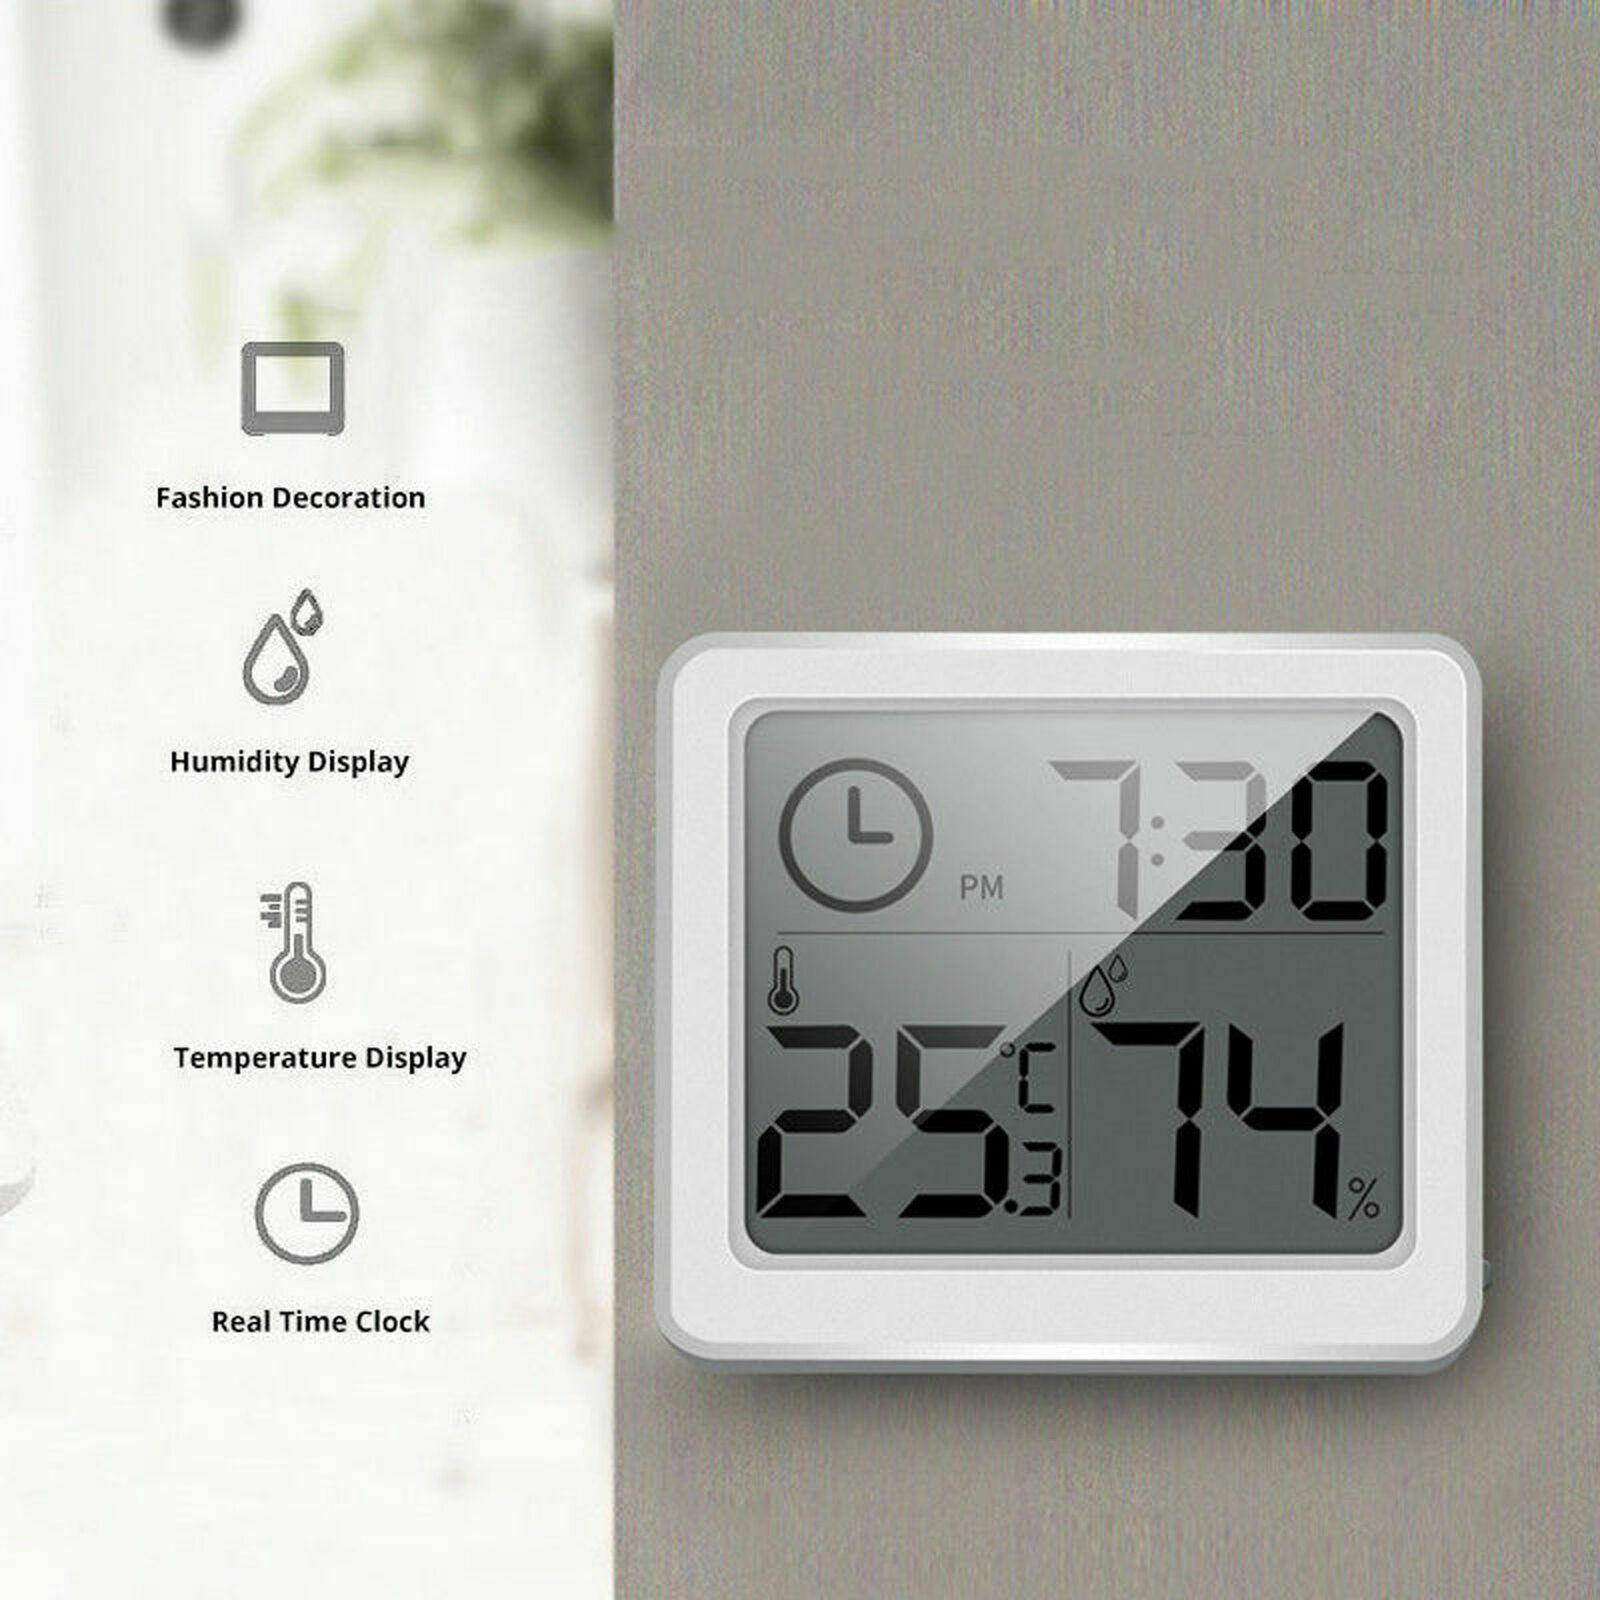 2020 Digital Lcd Thermometer Hygrometer Humidity Meter Room Indoor Temperature Clock From Wangxiaofeng806 6 37 Dhgate Com